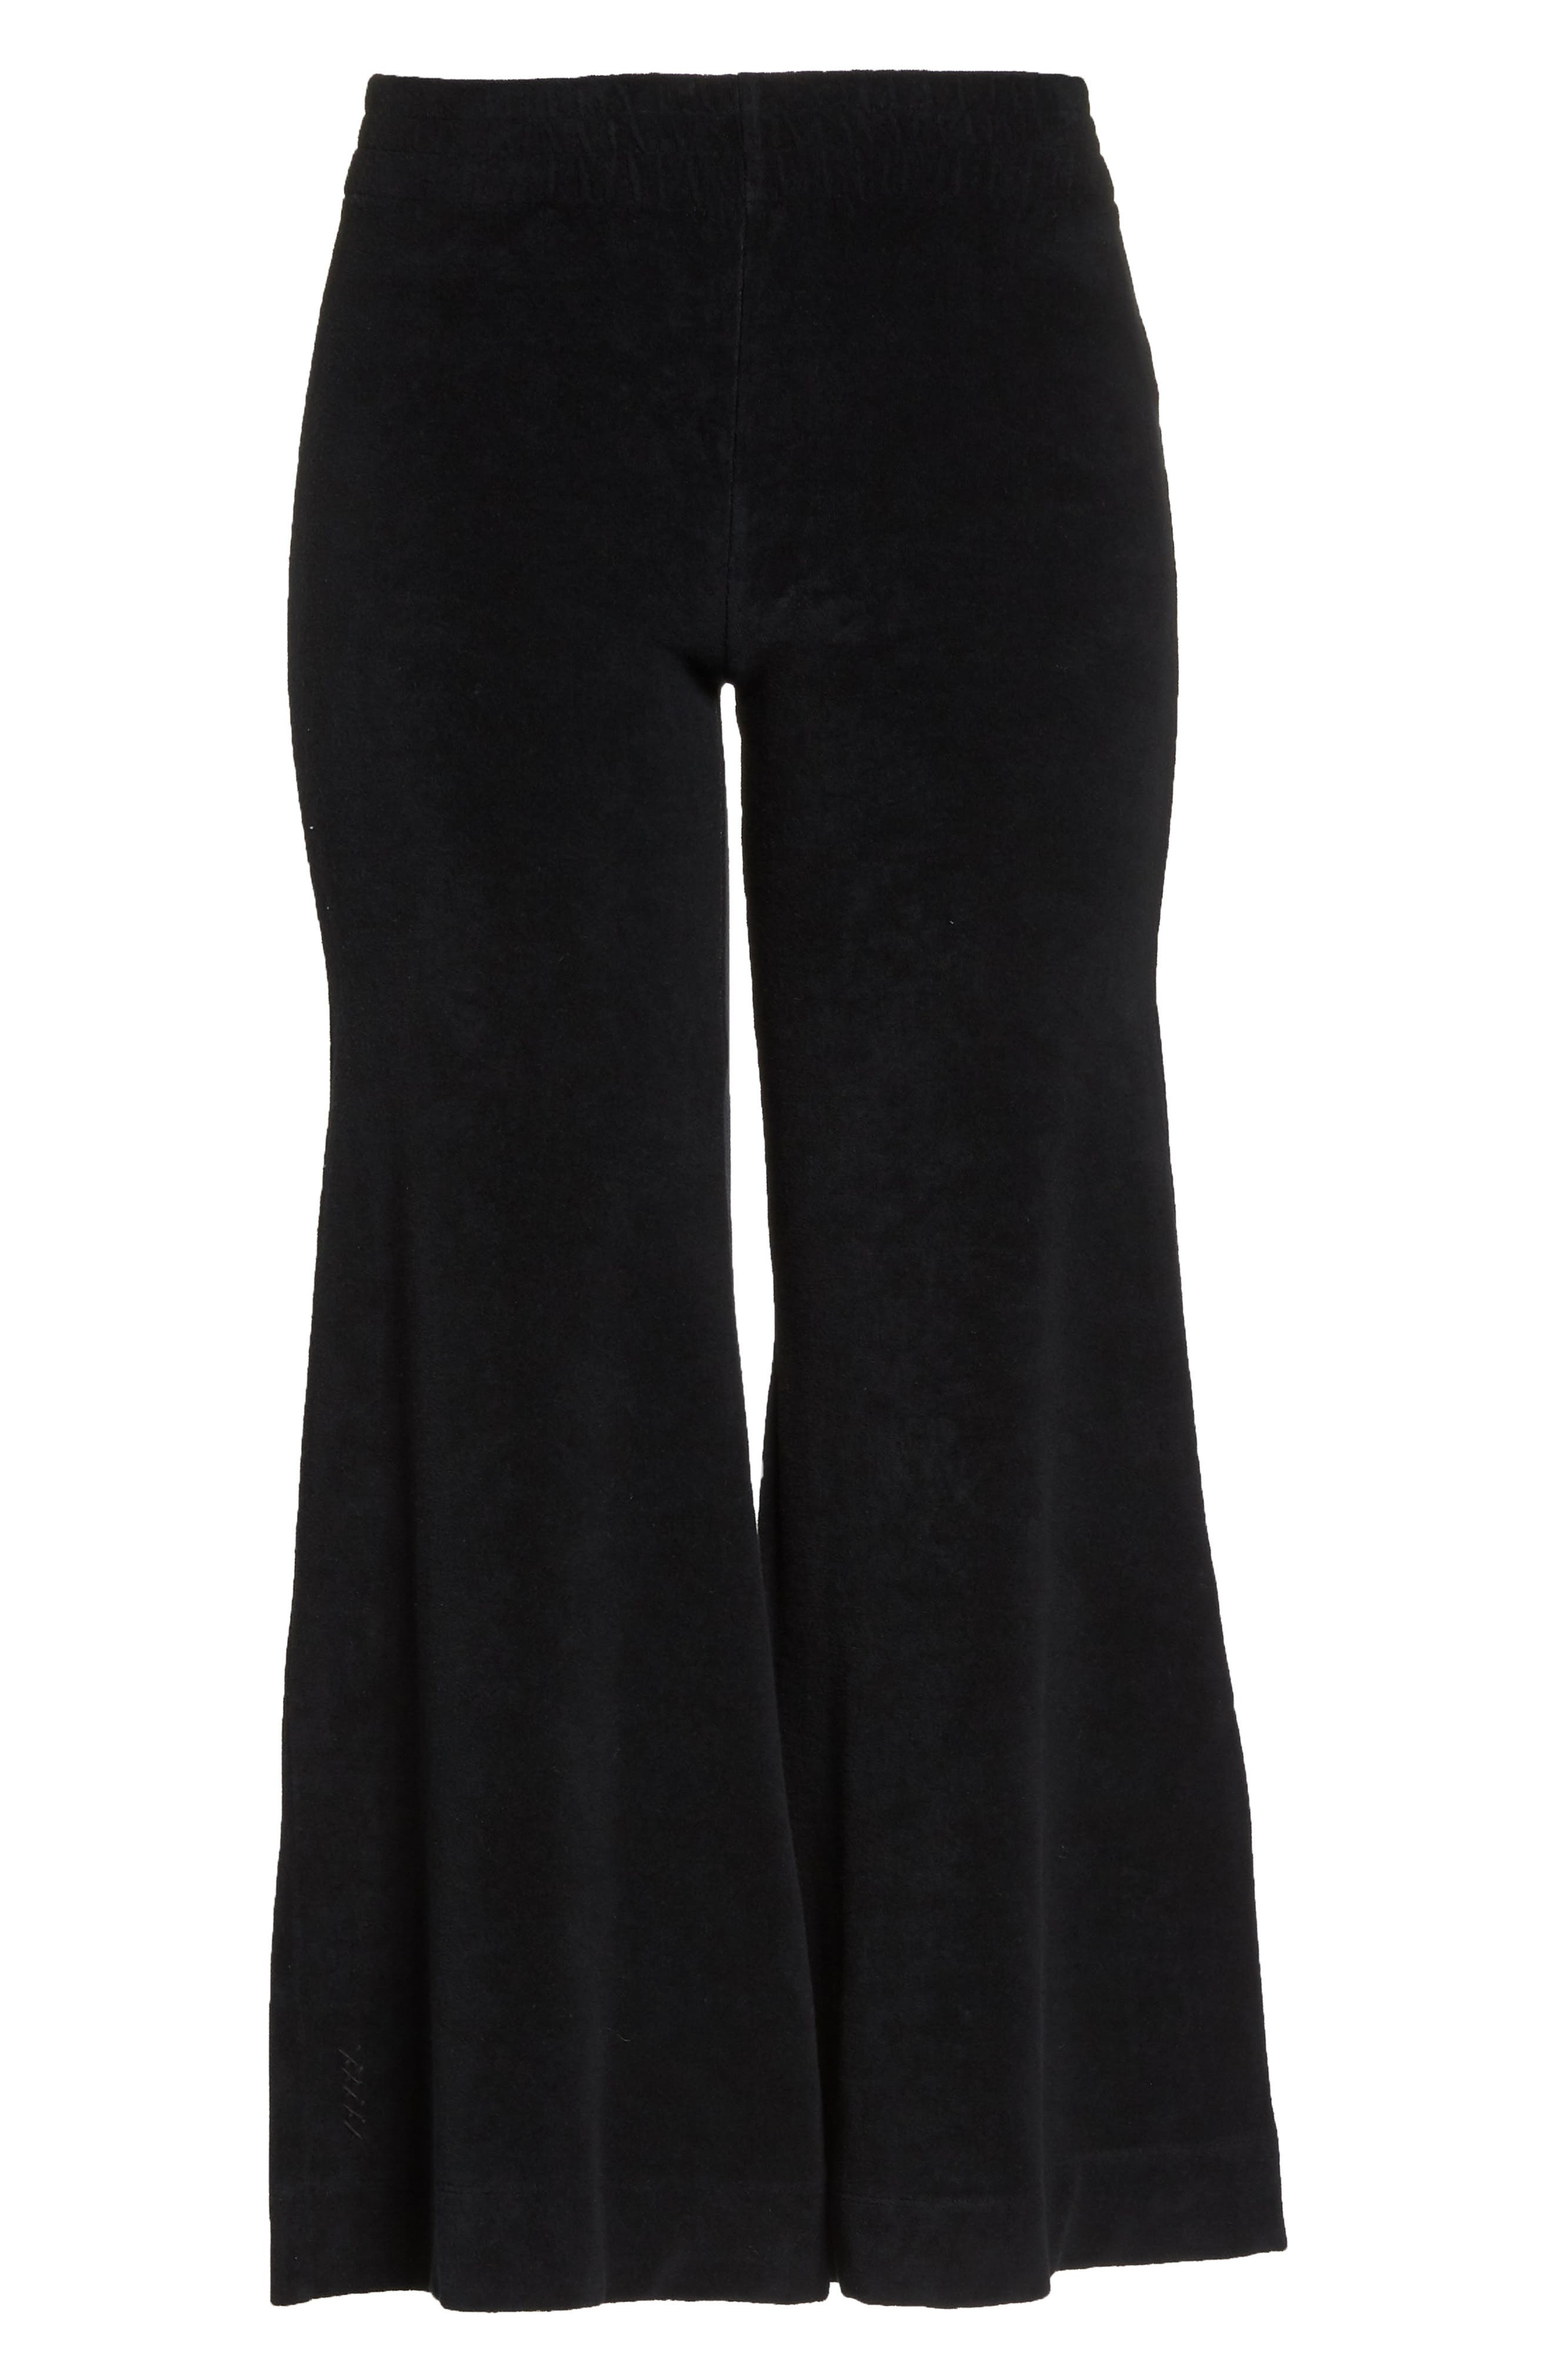 Terry Flare Lounge Pants,                             Alternate thumbnail 6, color,                             001